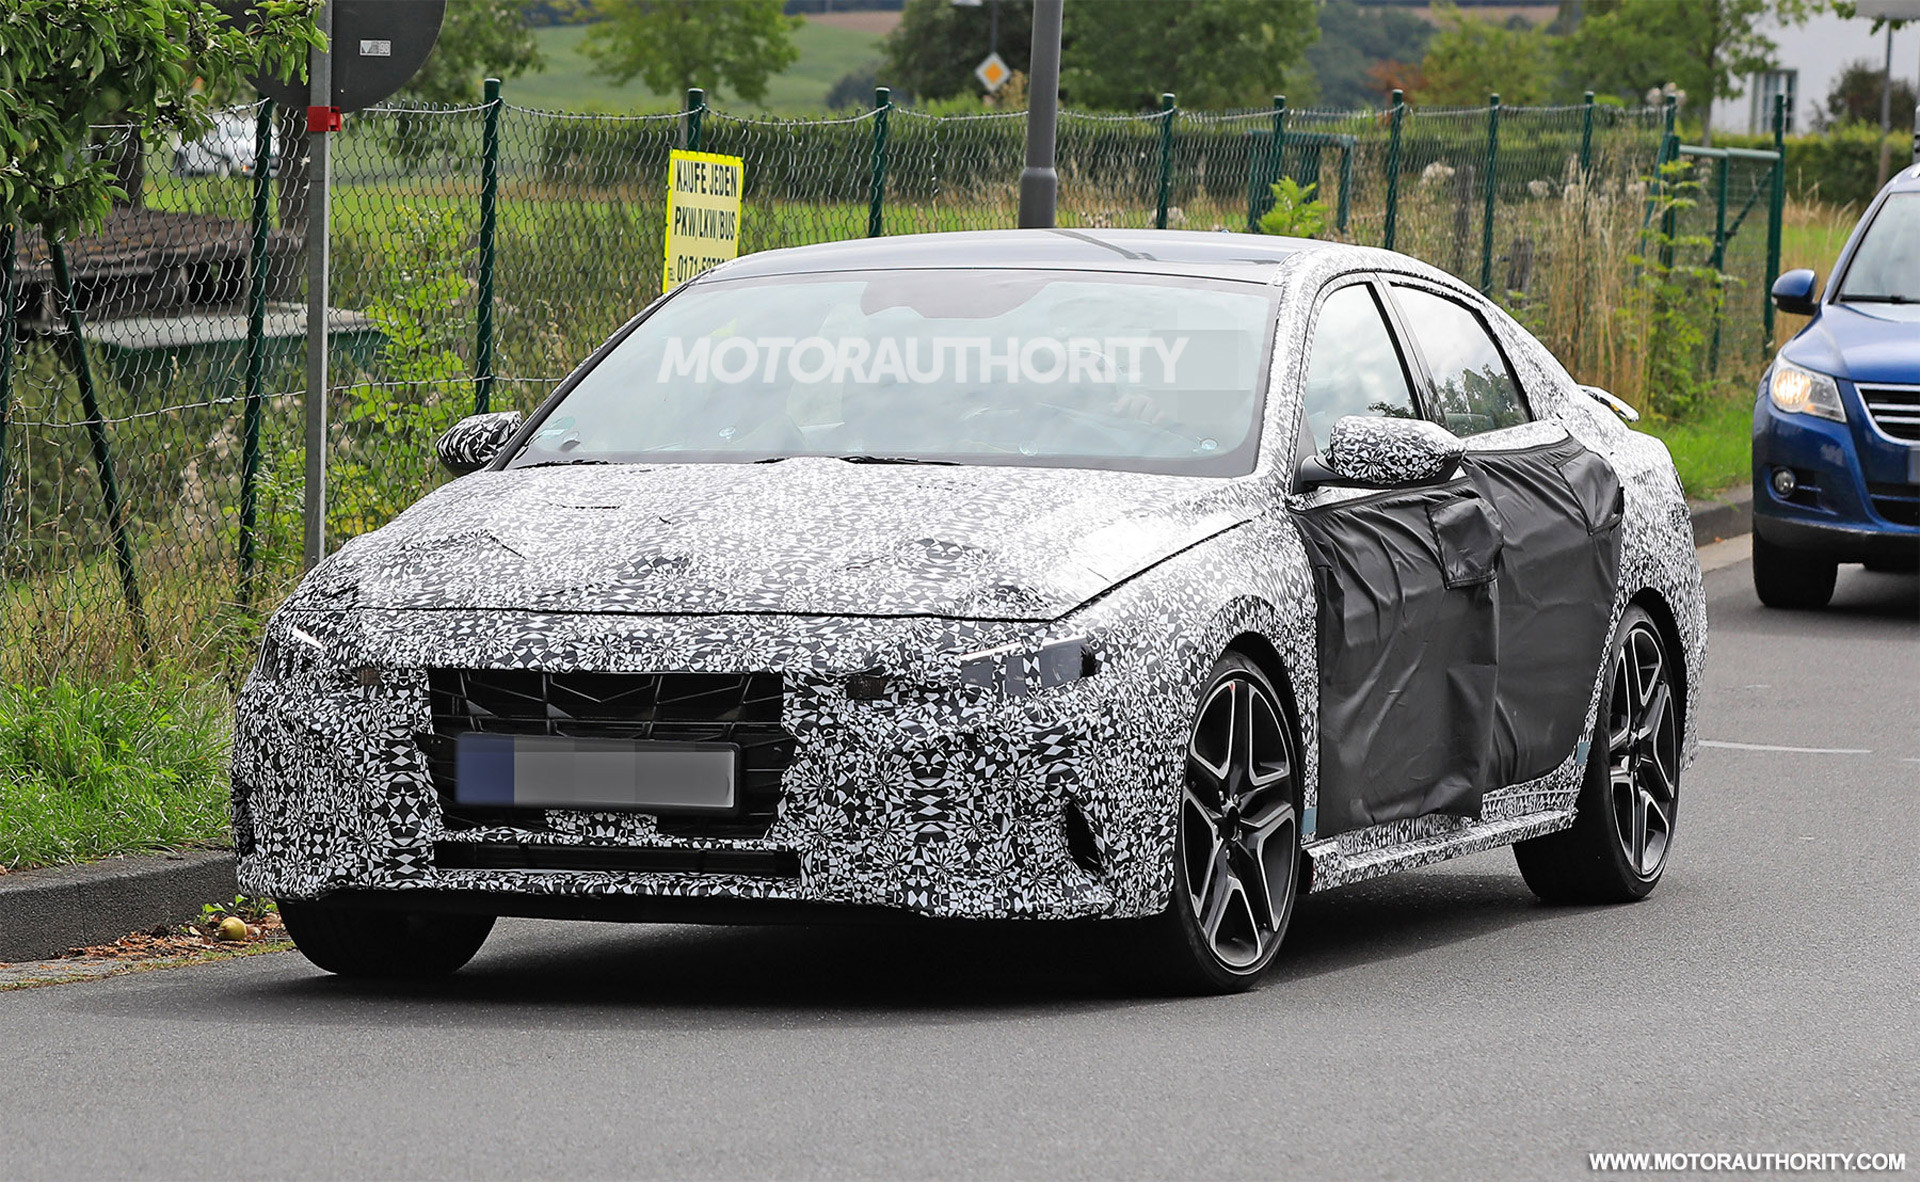 2022 Hyundai Elantra N spy shots: Turning up the performance dial in compact arena